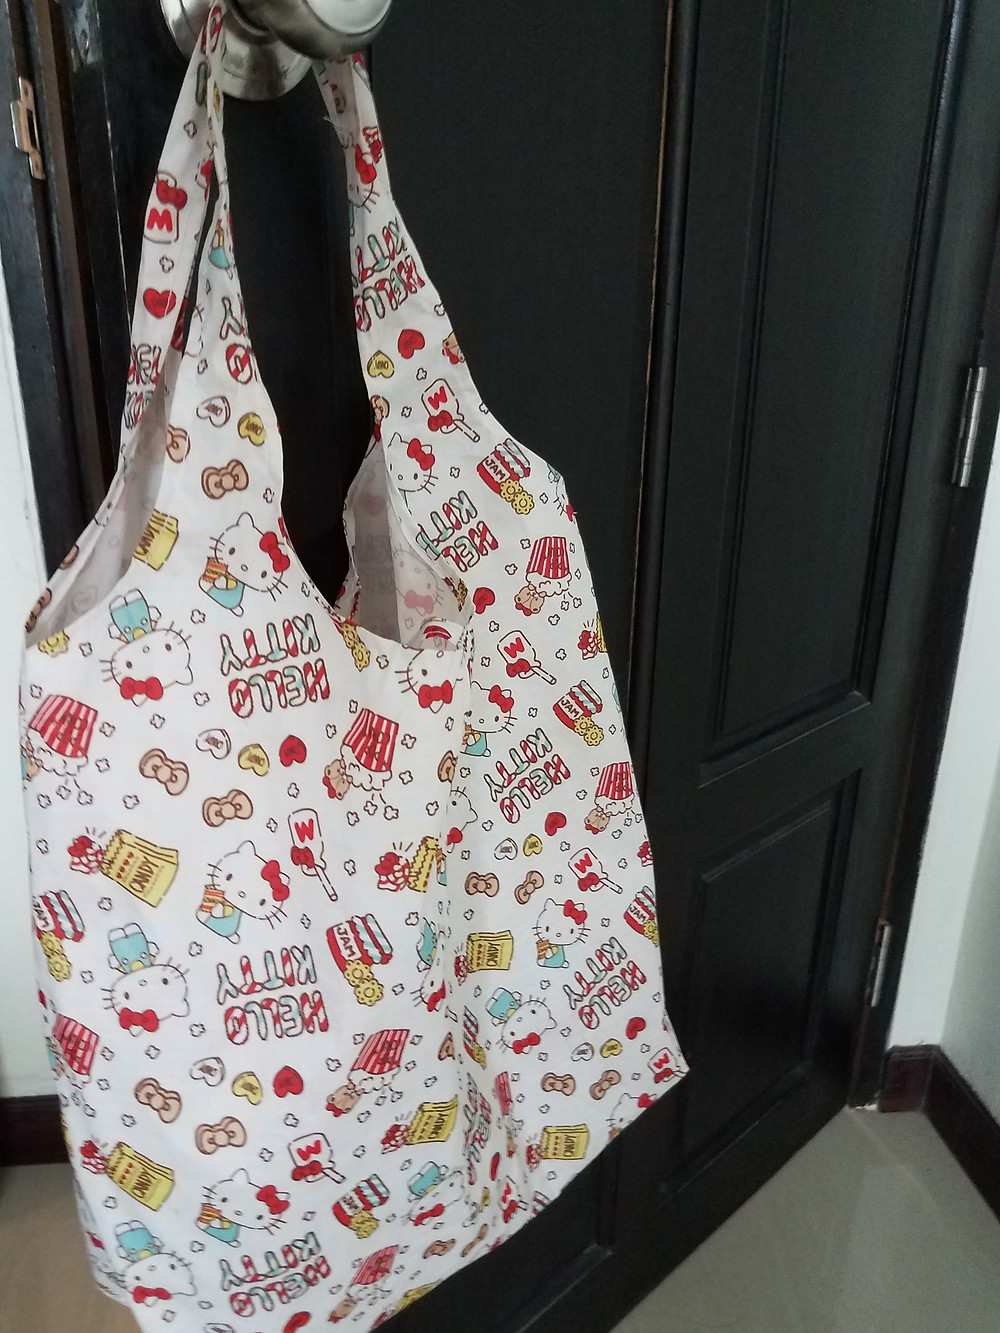 Hello Kitty reusable shopping bag from Japan